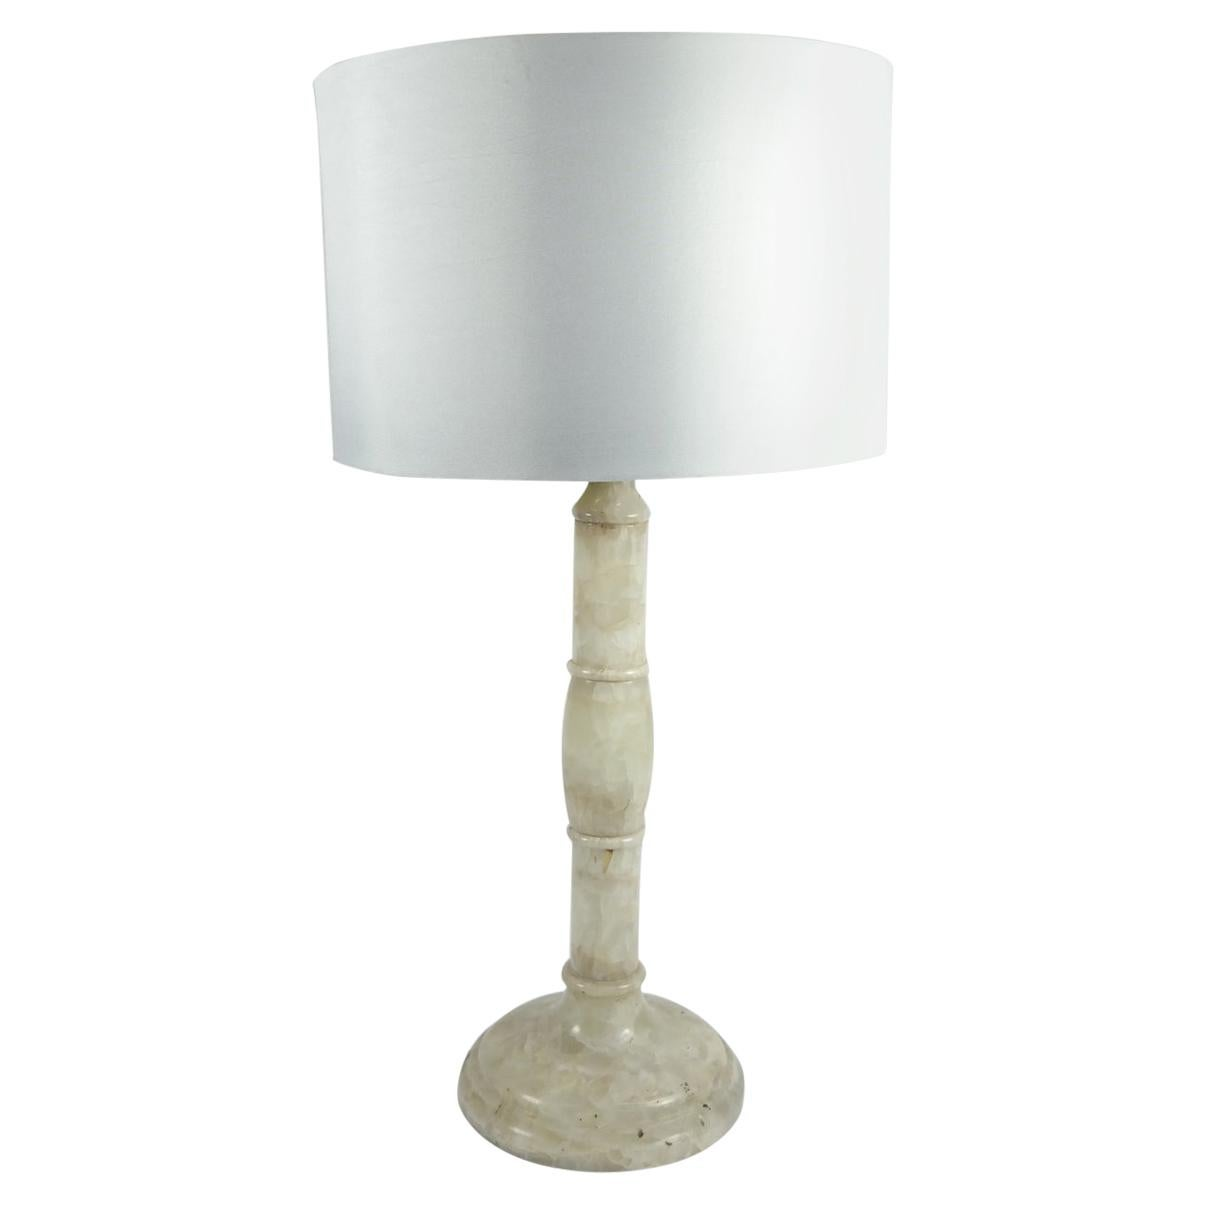 Agate Stone Table Lamp with Satin Lampshade, 1970s